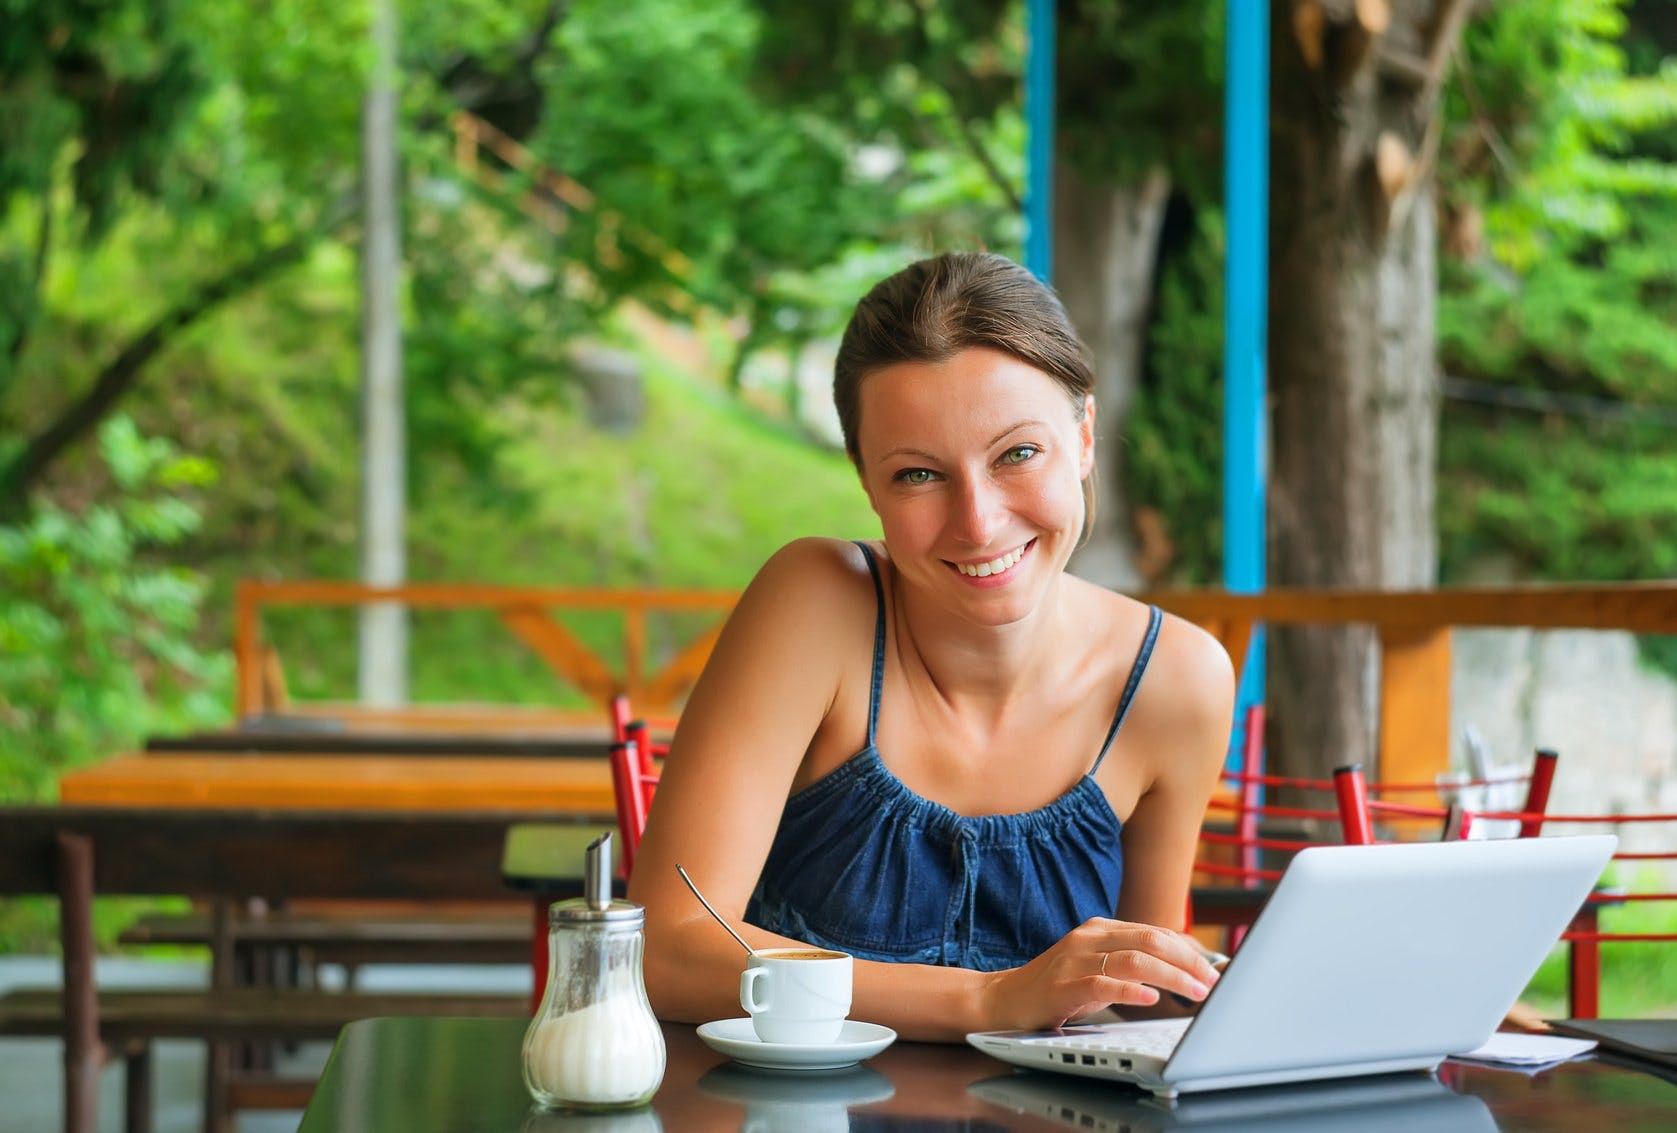 Is Online Dates a Good Choice for You